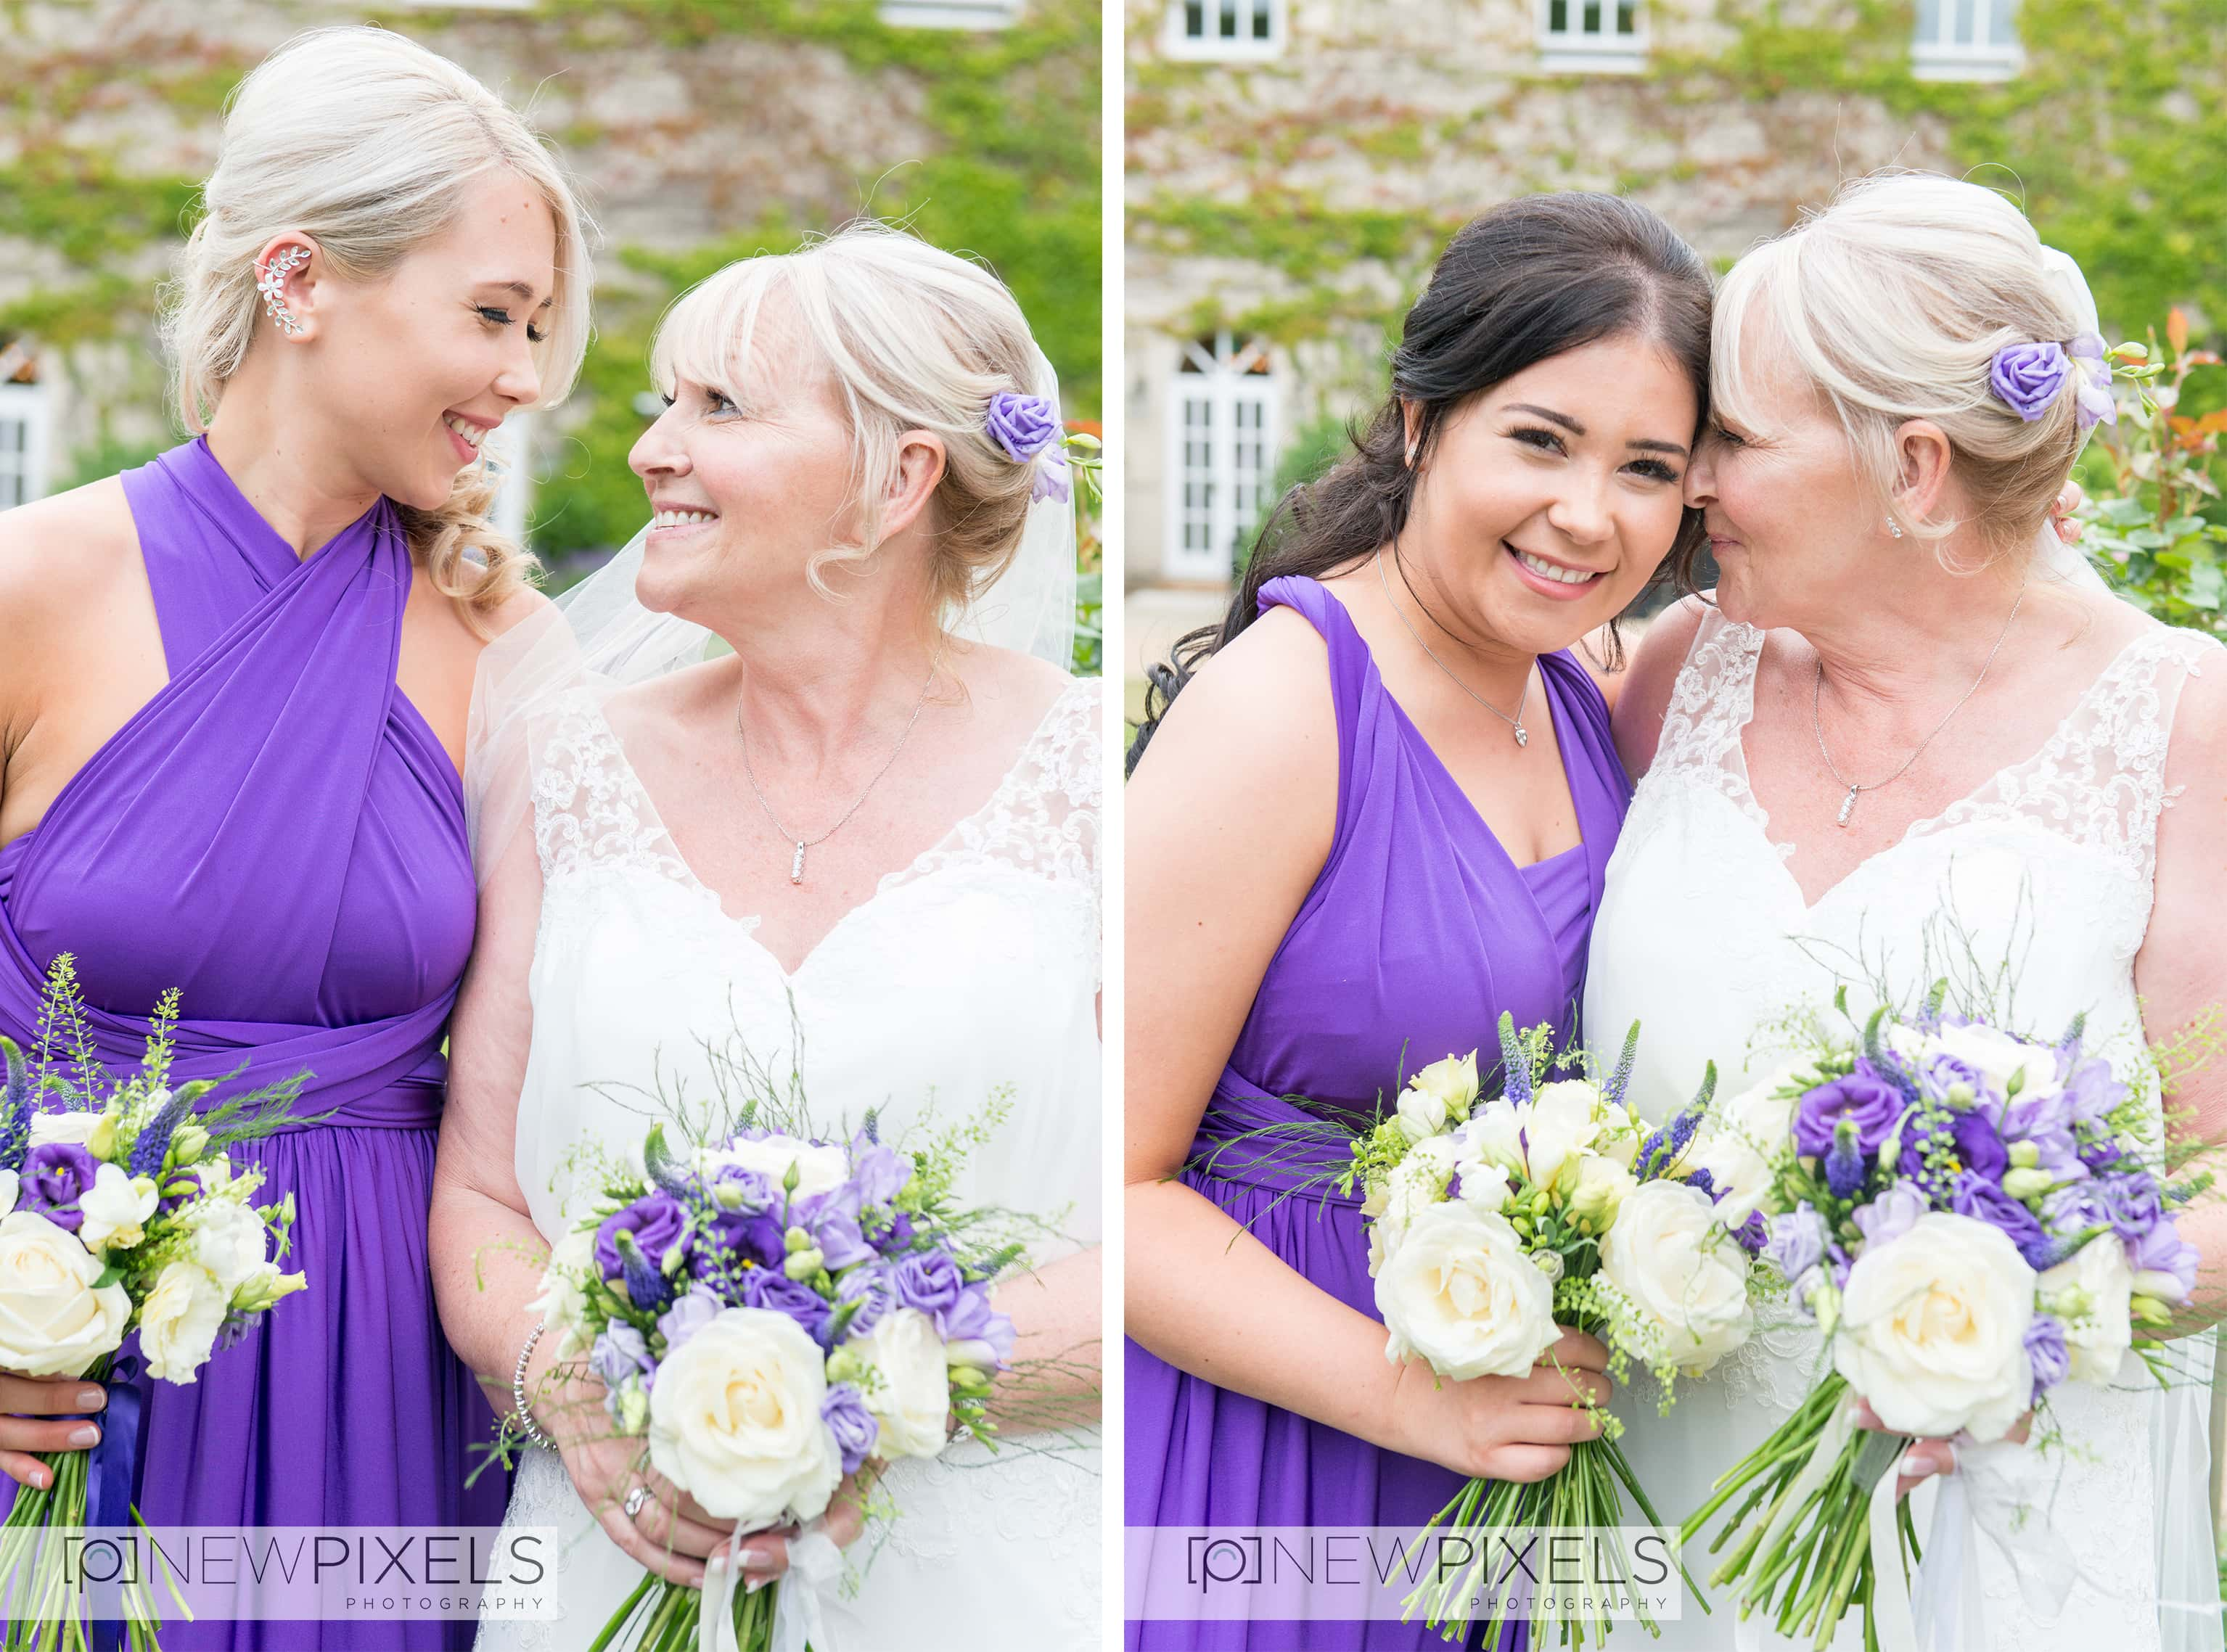 downhall wedding photographer12